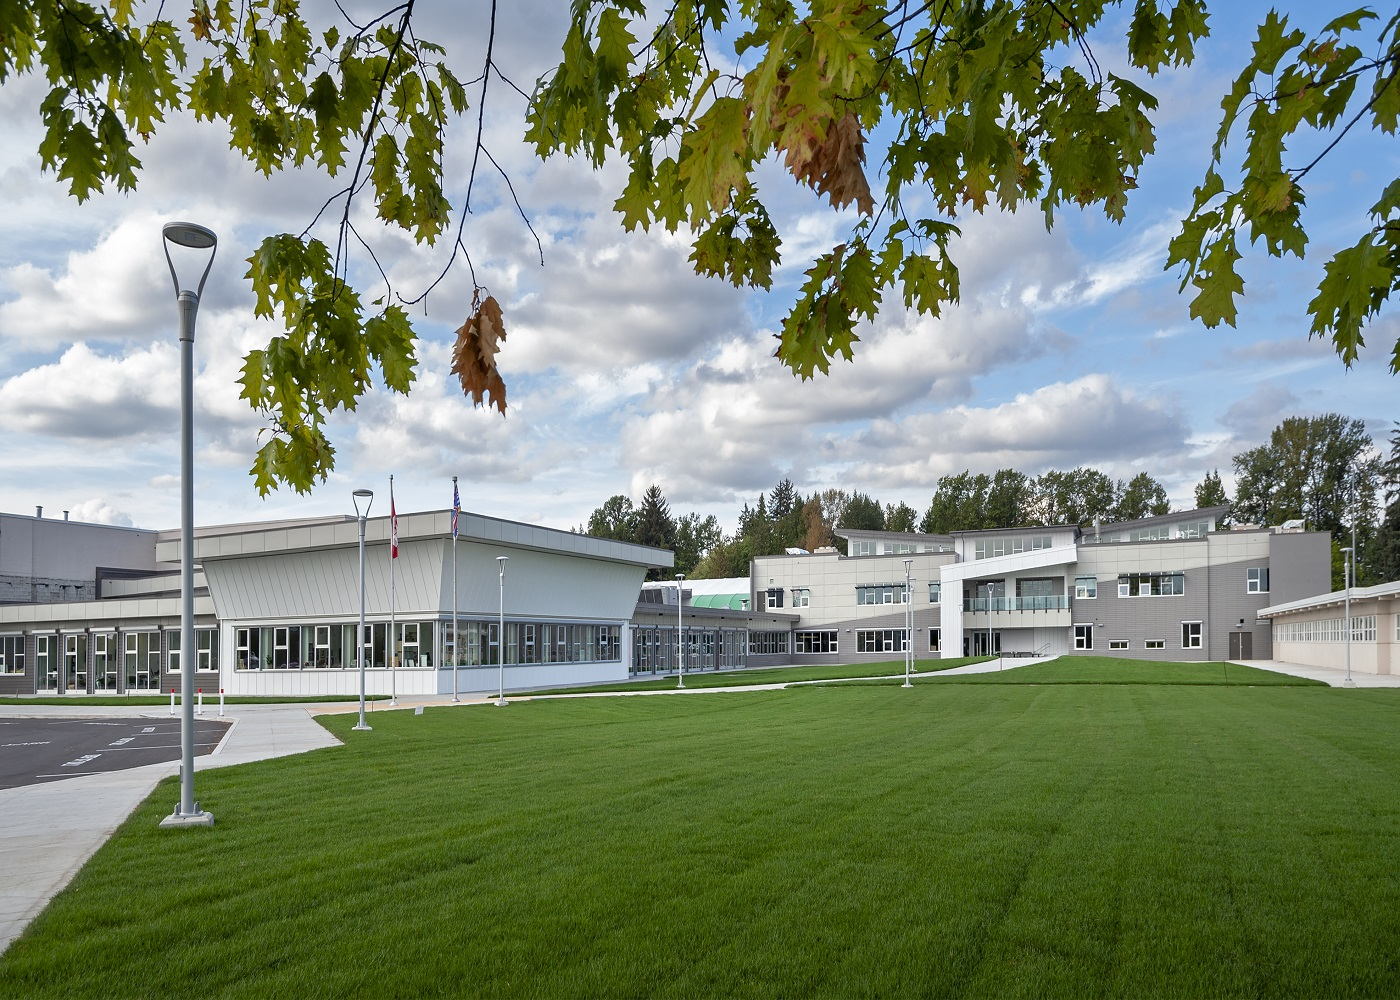 Langley Secondary School